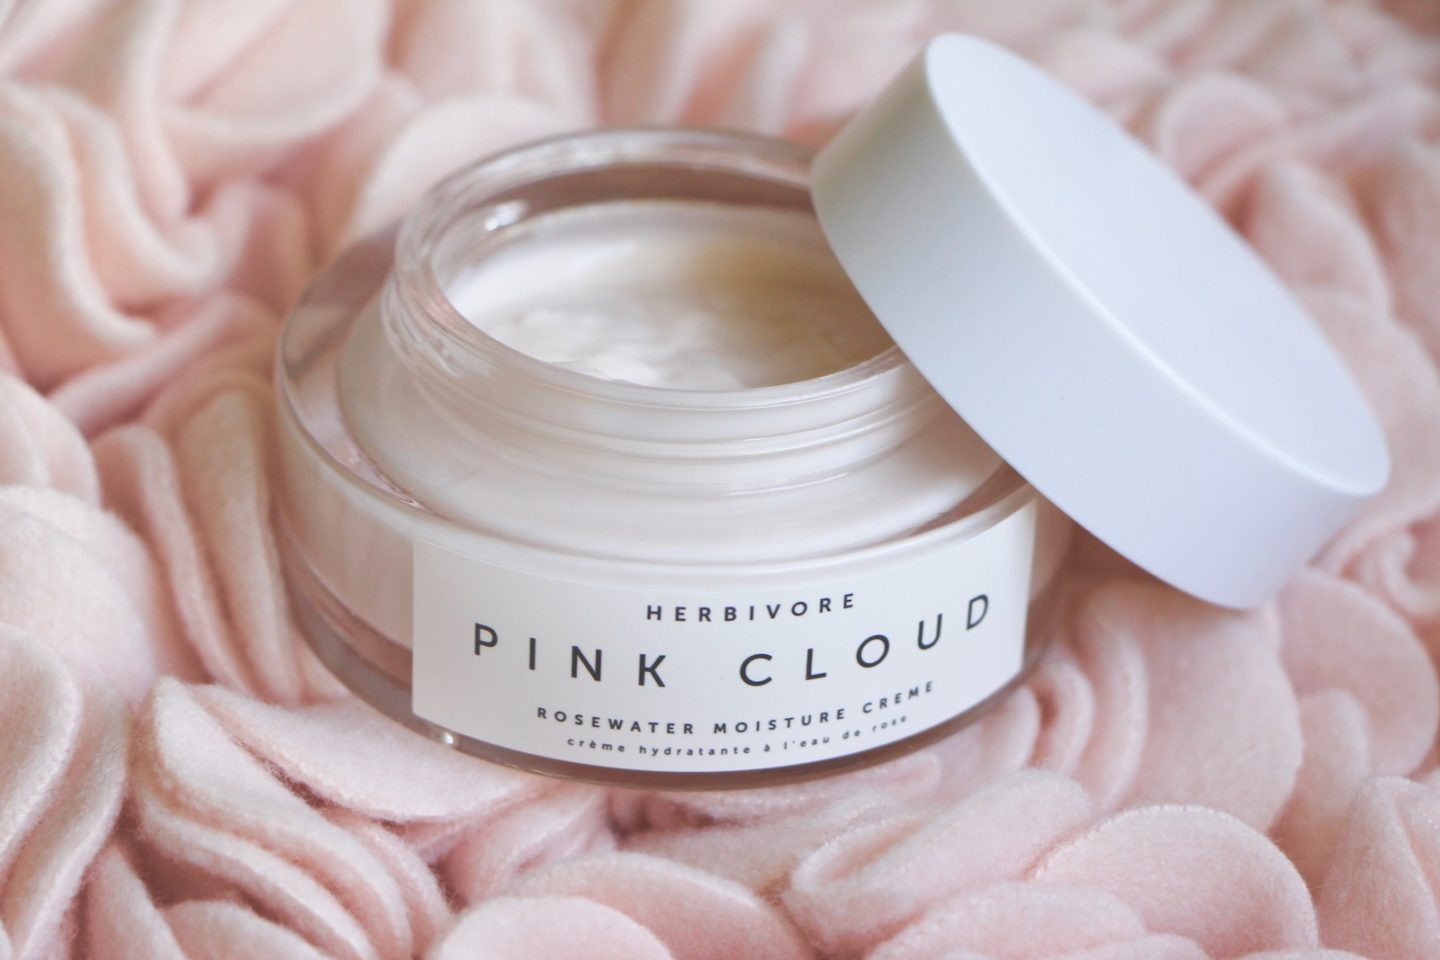 Herbivore Pink Cloud Rosewater Moisture Cream Review